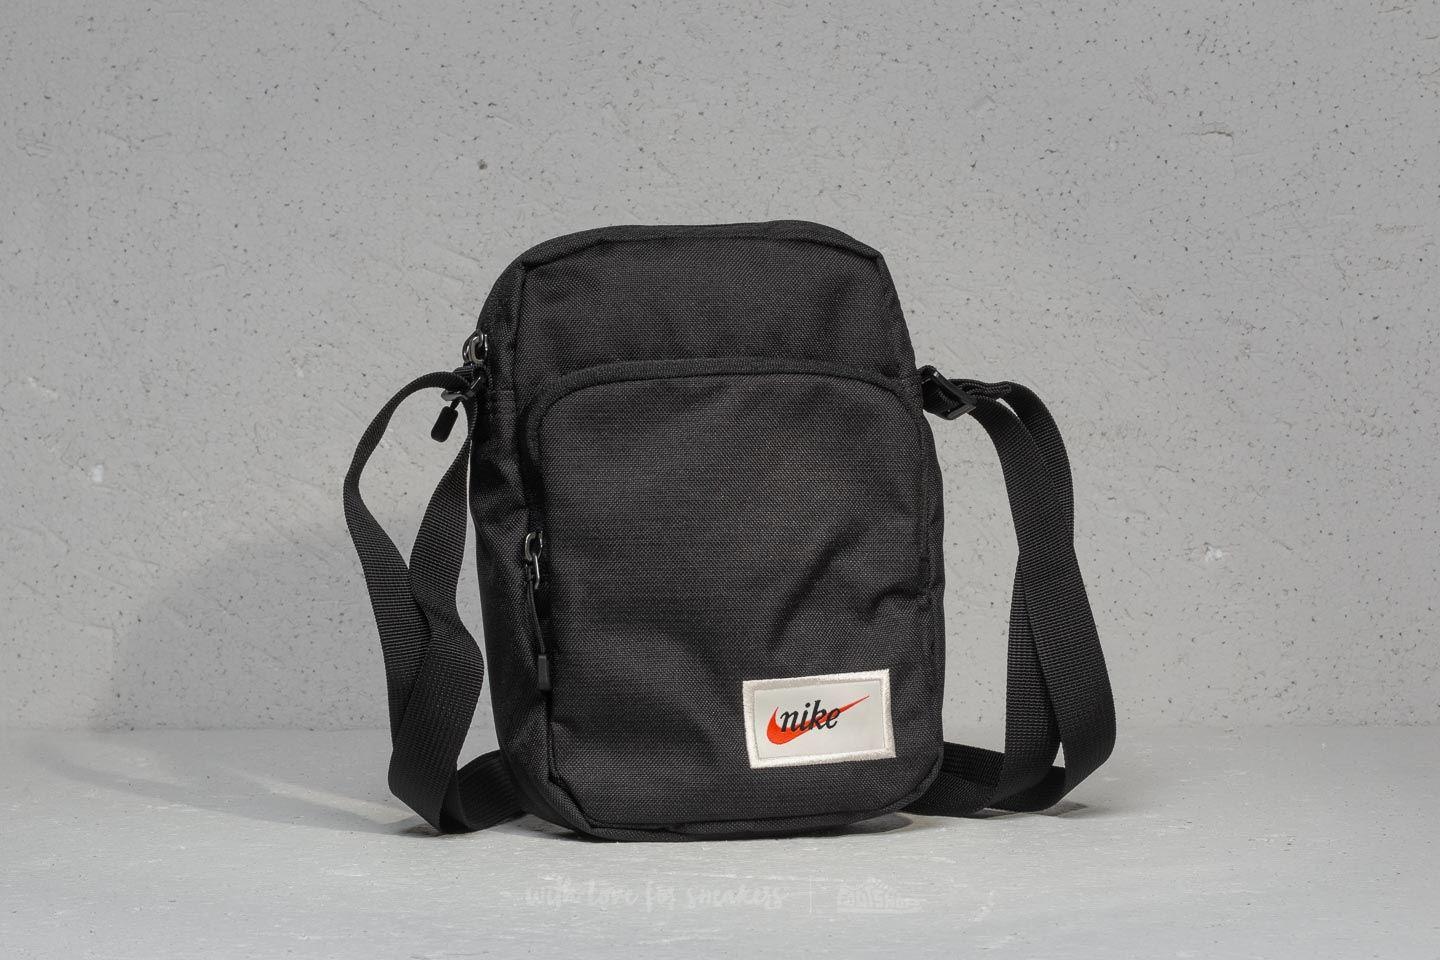 2fde07108f83 Lyst - Nike Heritage Small Items Bag Black in Black